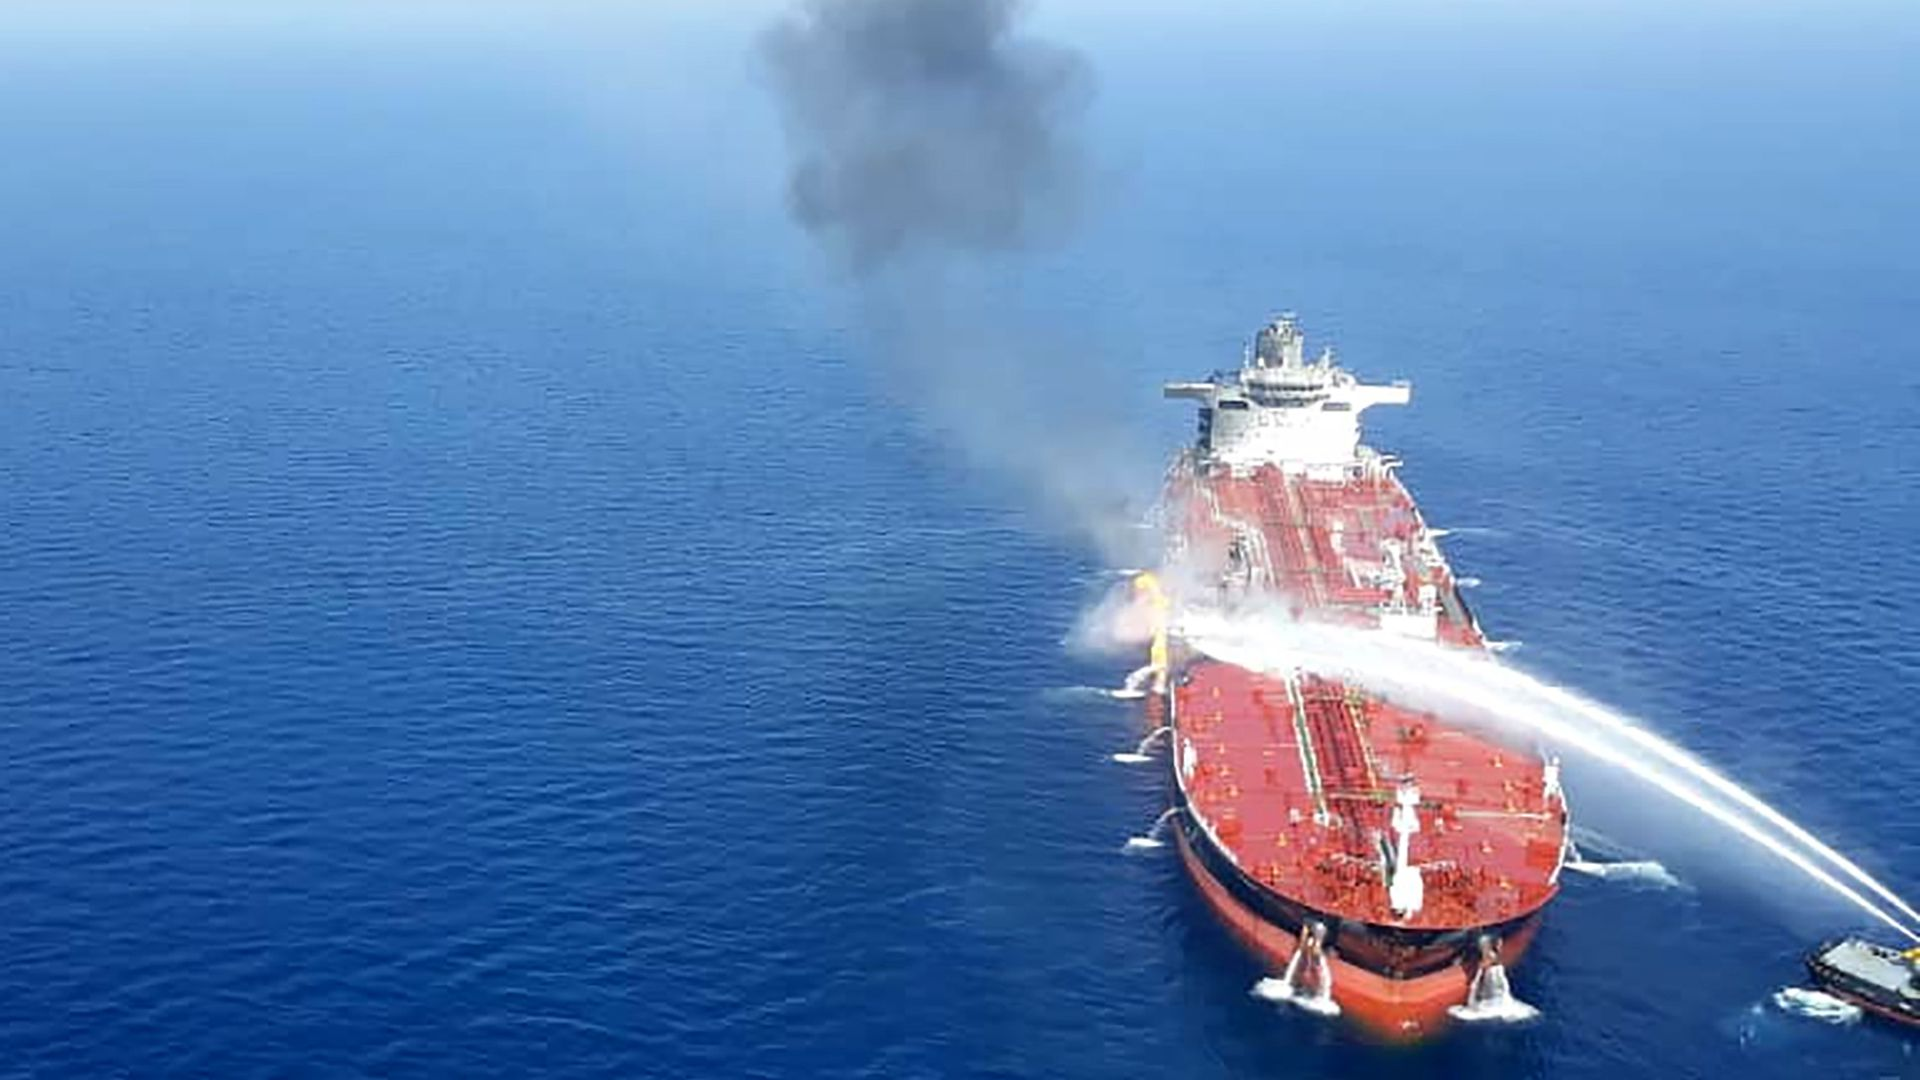 In this image, jets of water are shot onto a large oil tanker on the ocean.